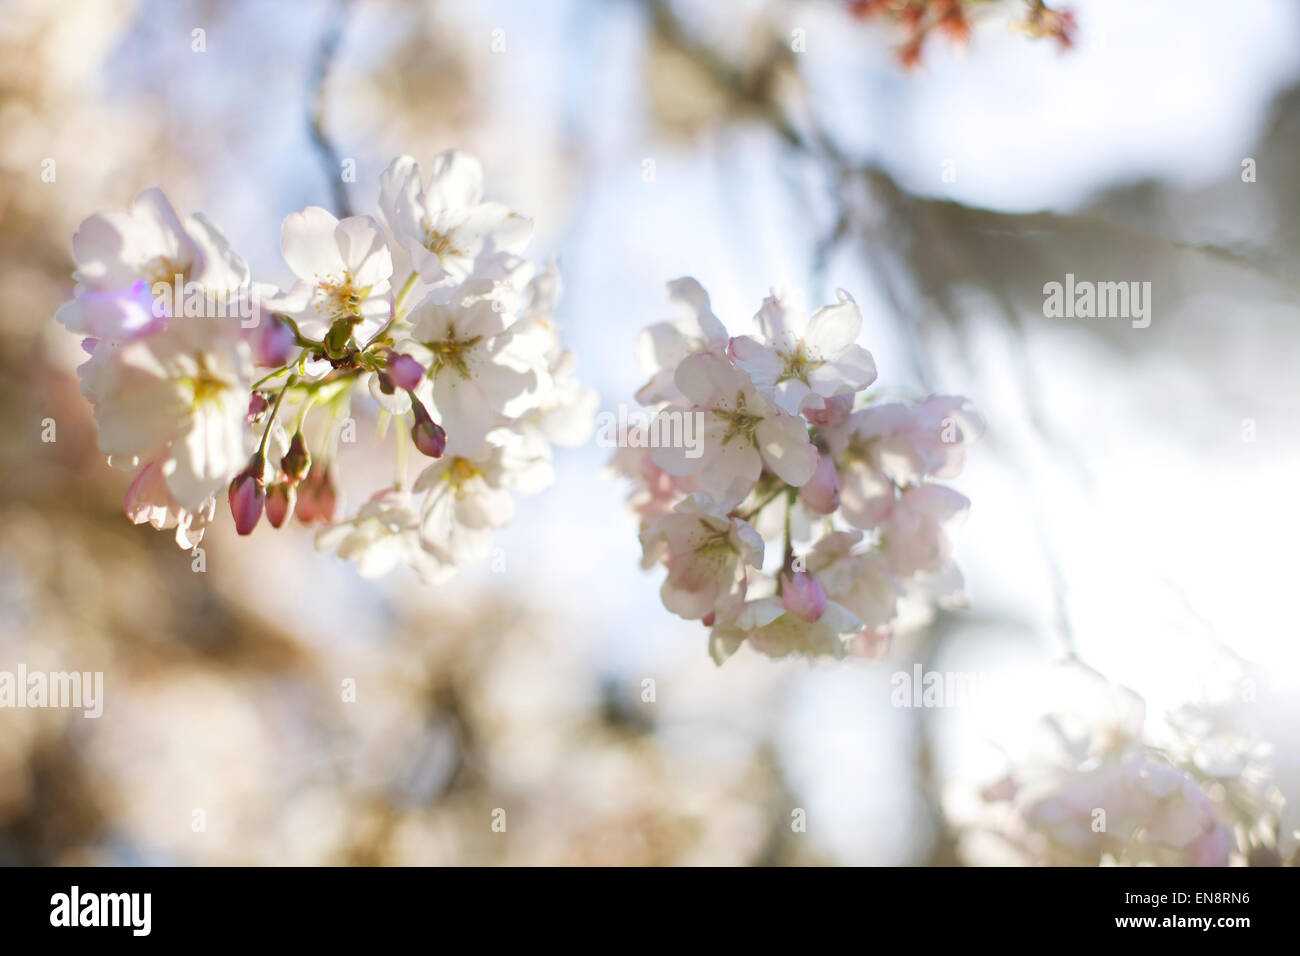 Looking up at pink and white cherry blossom flowers against the sky in the spring time. Stock Photo